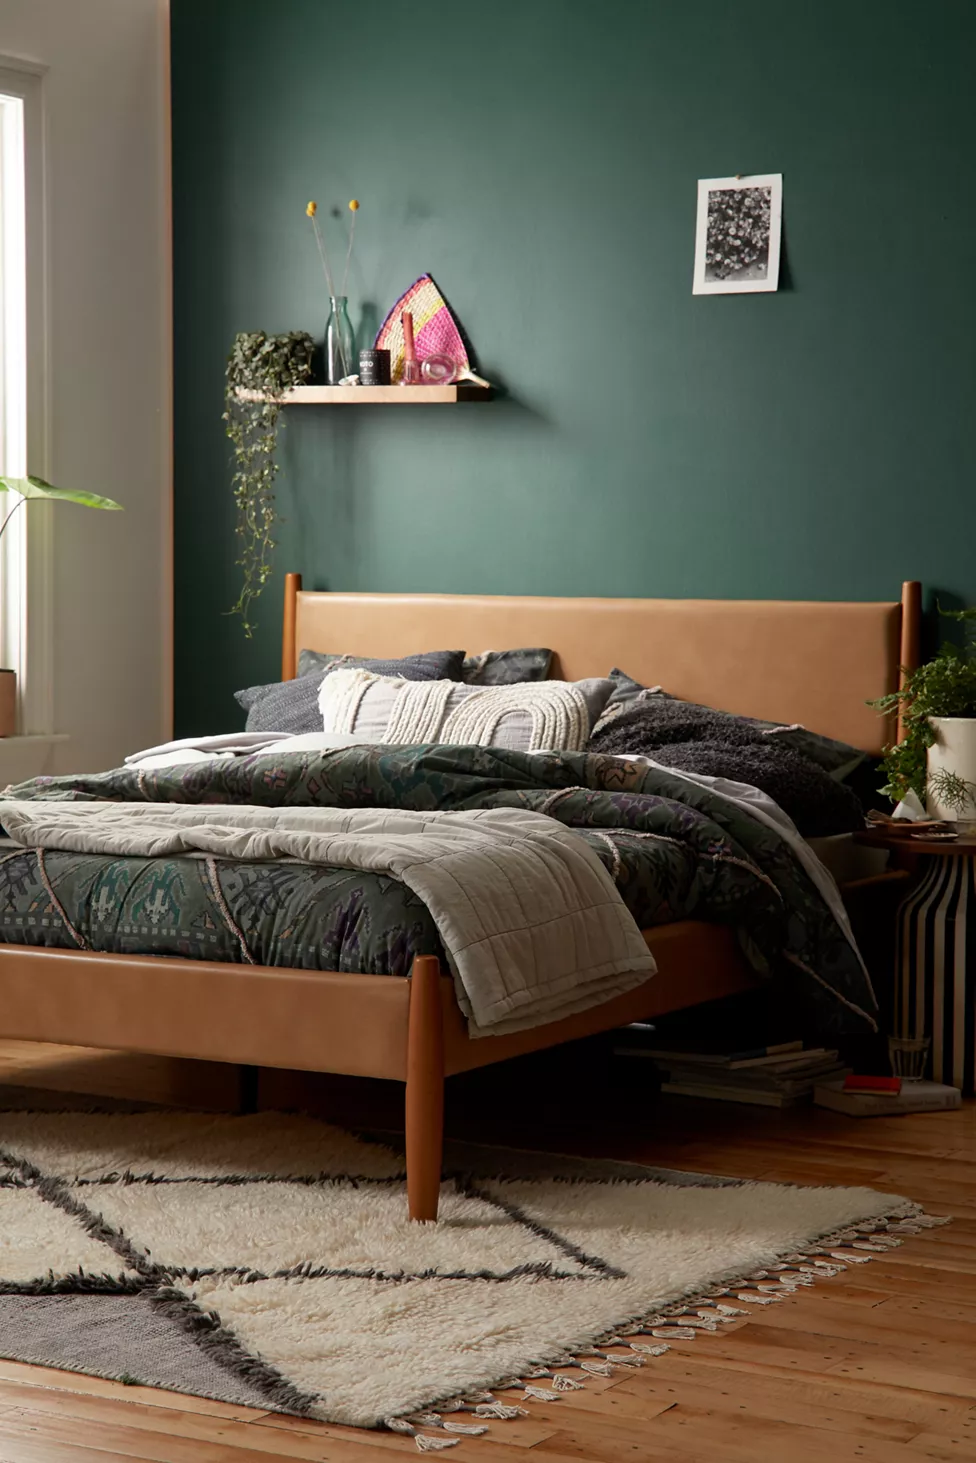 Huxley Recycled Leather Bed in 2020 | Green bedroom walls ...